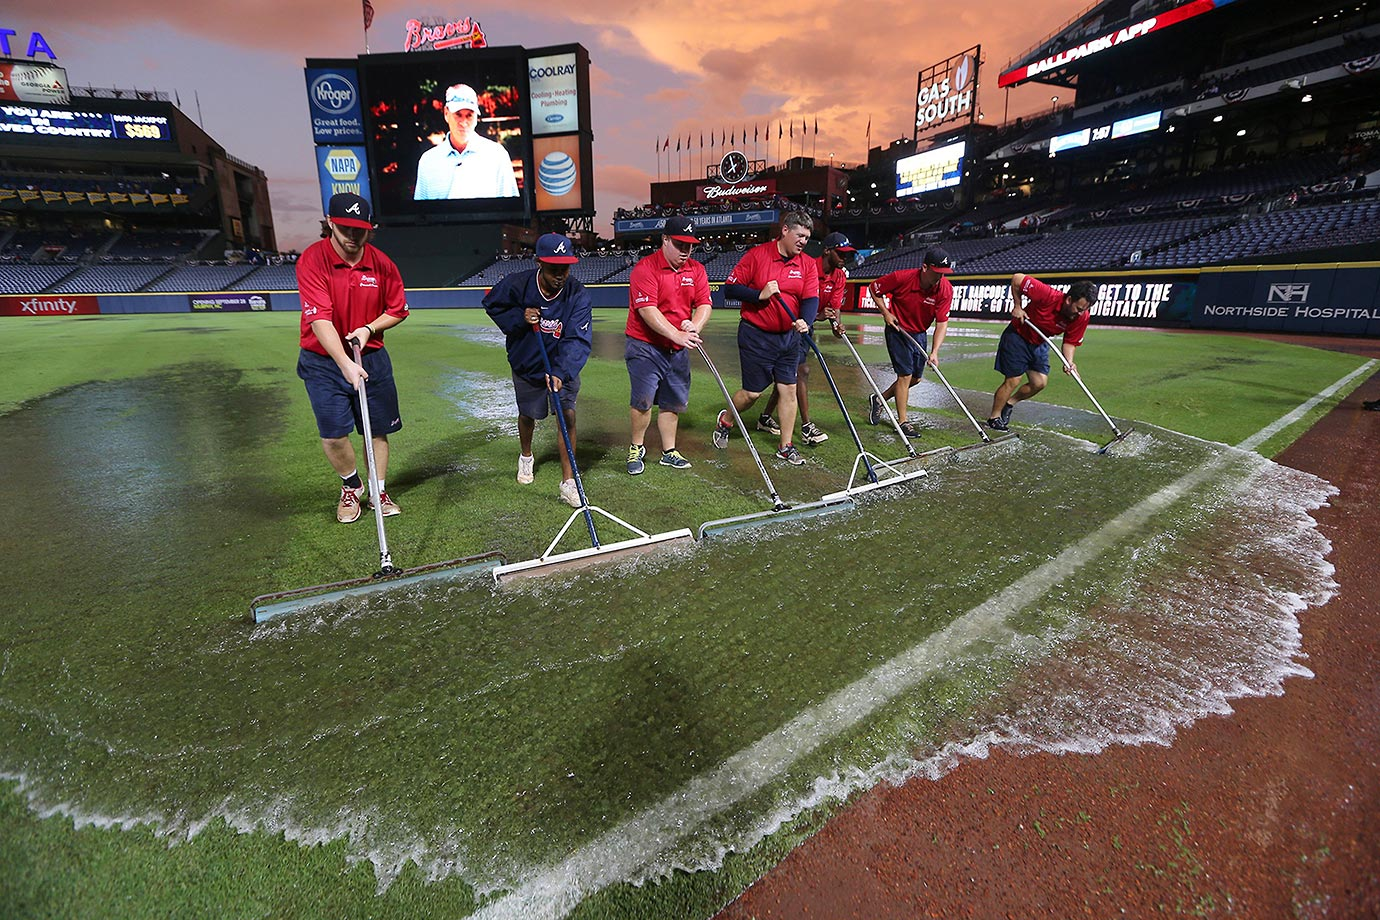 The outfield is flooded after a downpour at Turner Field in Atlanta.